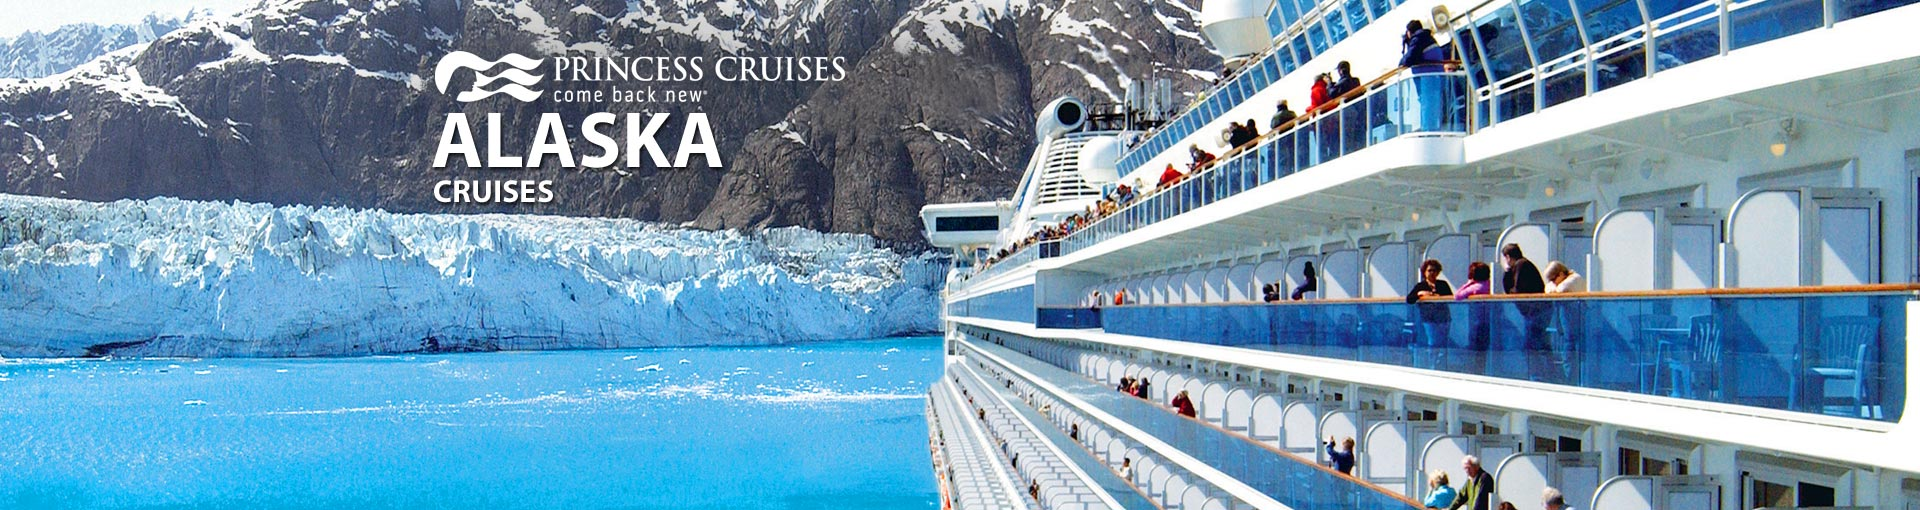 Princess Alaska Cruises 2017 And 2018 Alaskan Princess